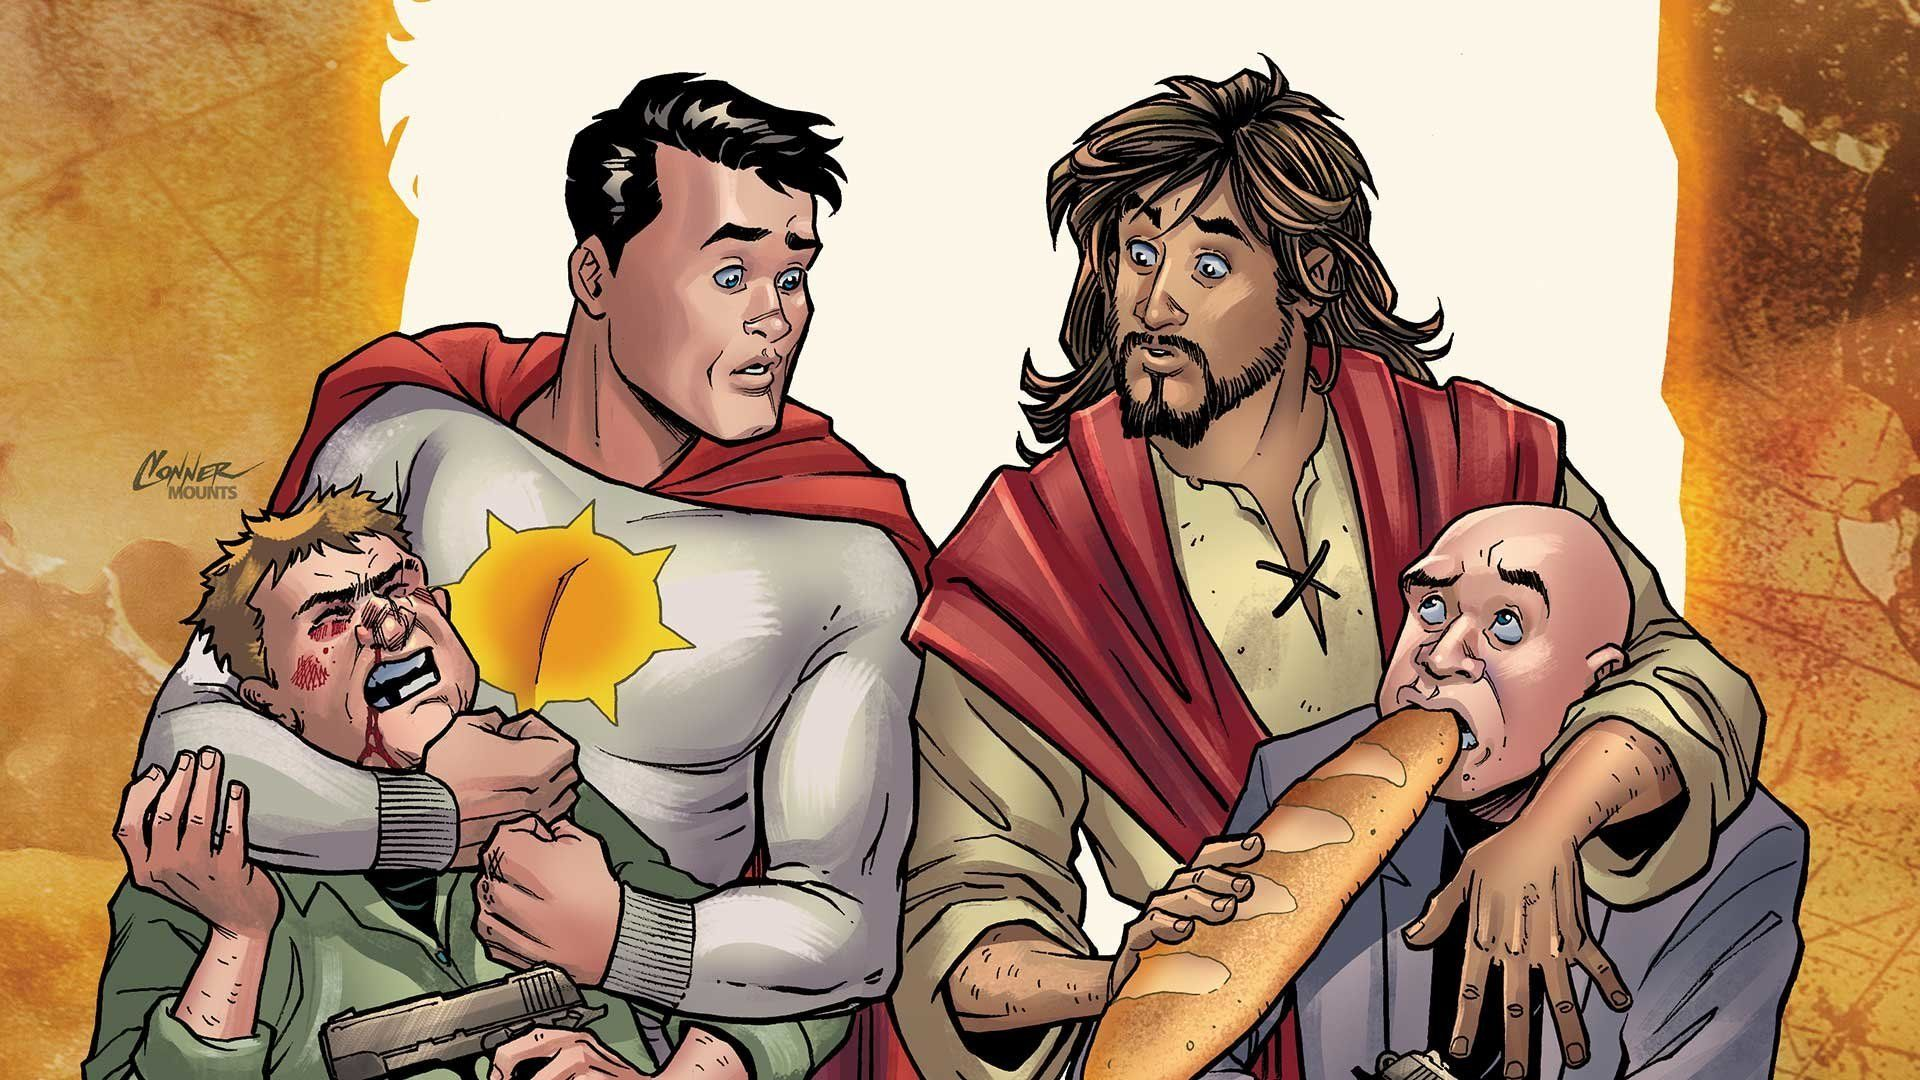 DC Relinquishes Rights To Comic Book Series About Jesus After Conservative Backlash